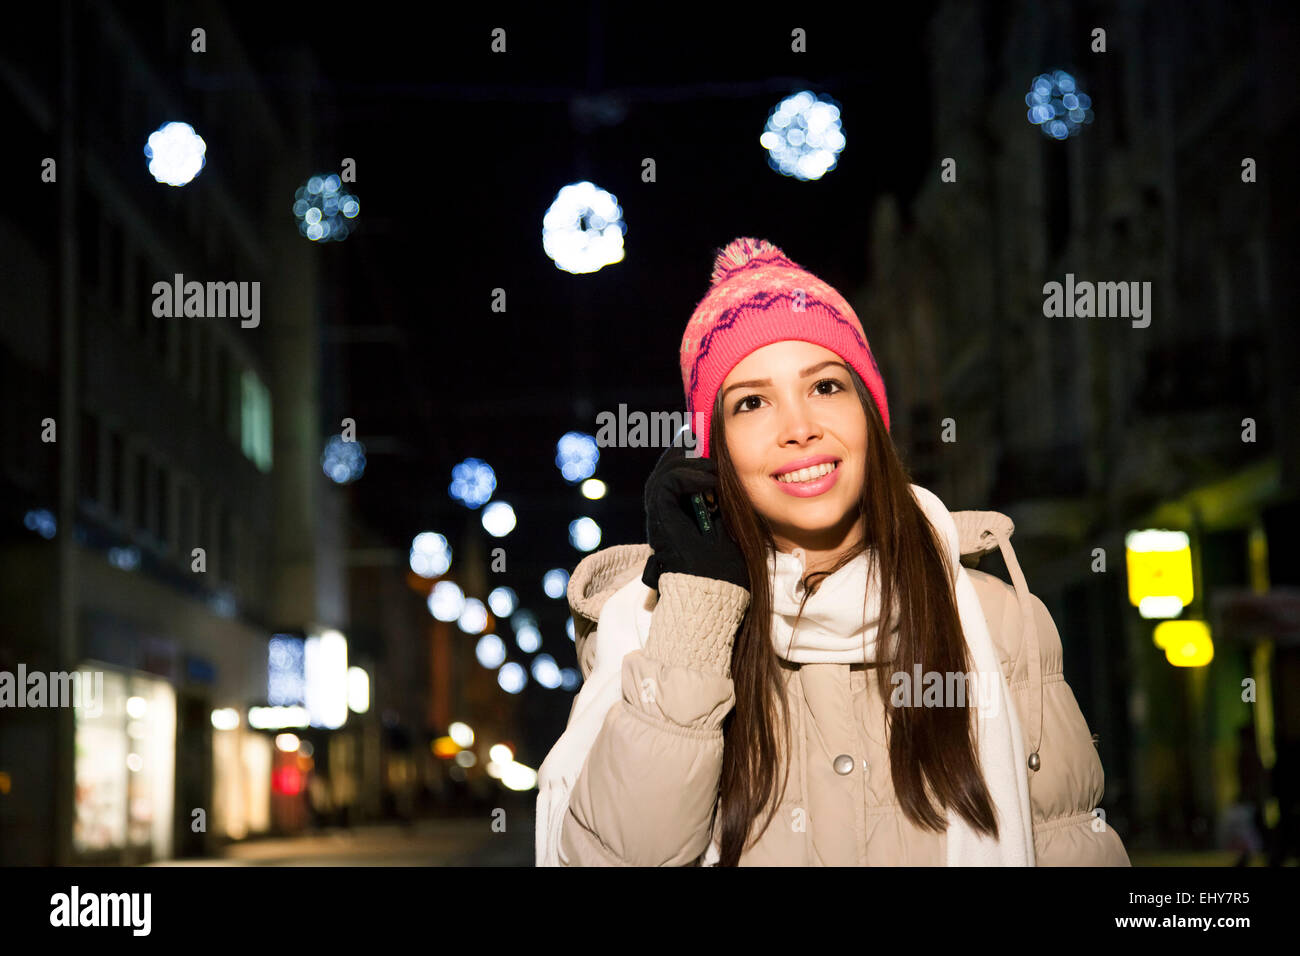 Portrait of young woman using smart phone - Stock Image